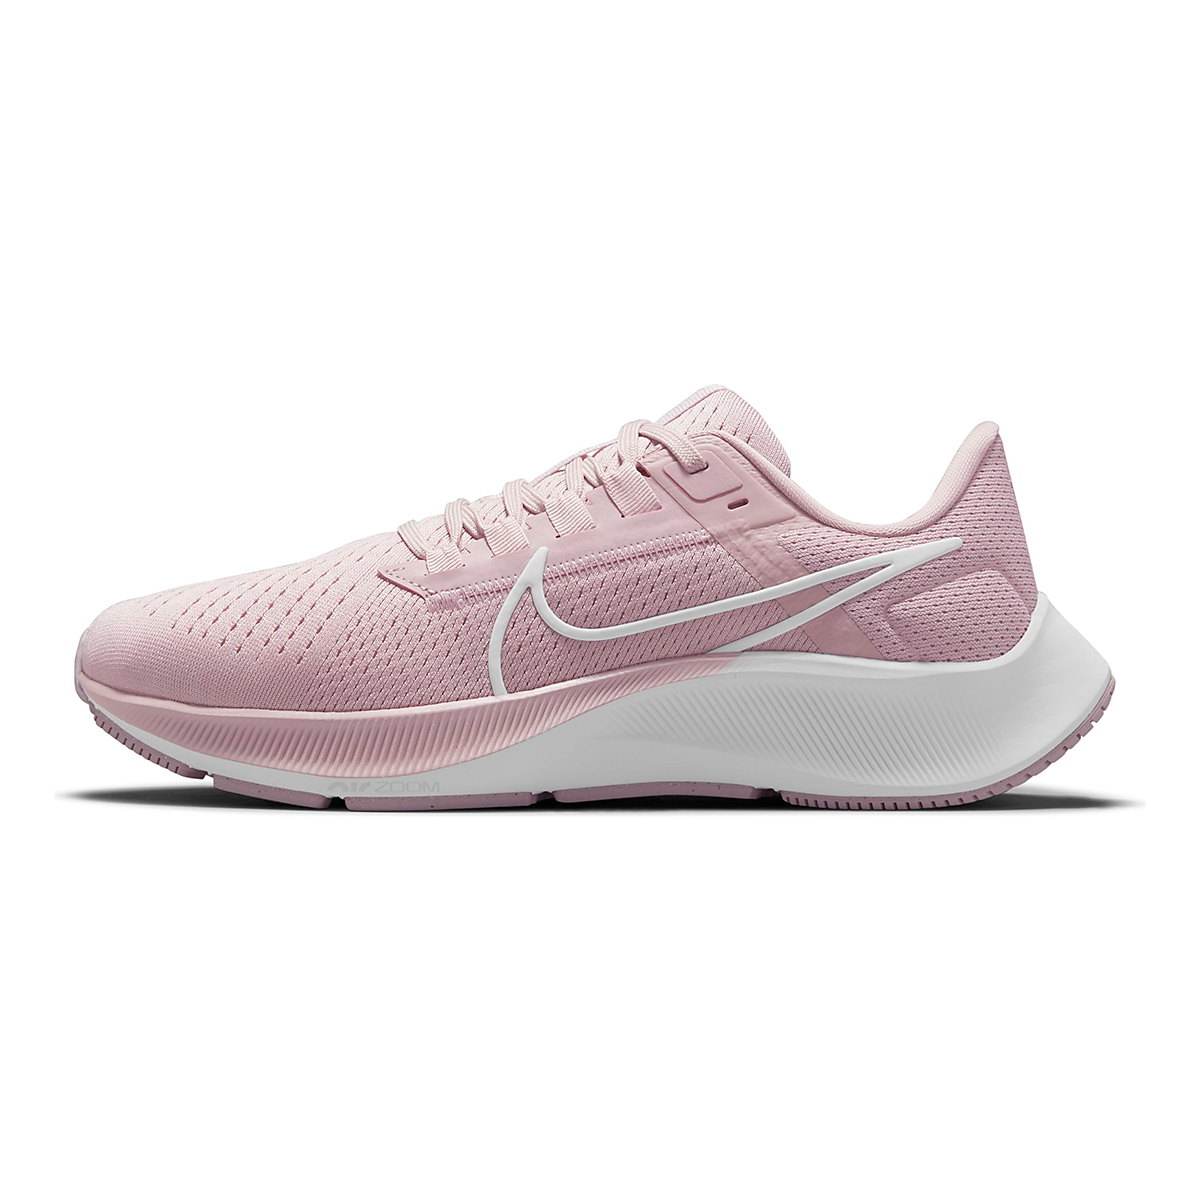 Women's Nike Air Zoom Pegasus 38 Running Shoe - Color: Champagne/White/Arctic Pink - Size: 5 - Width: Regular, Champagne/White/Arctic Pink, large, image 2